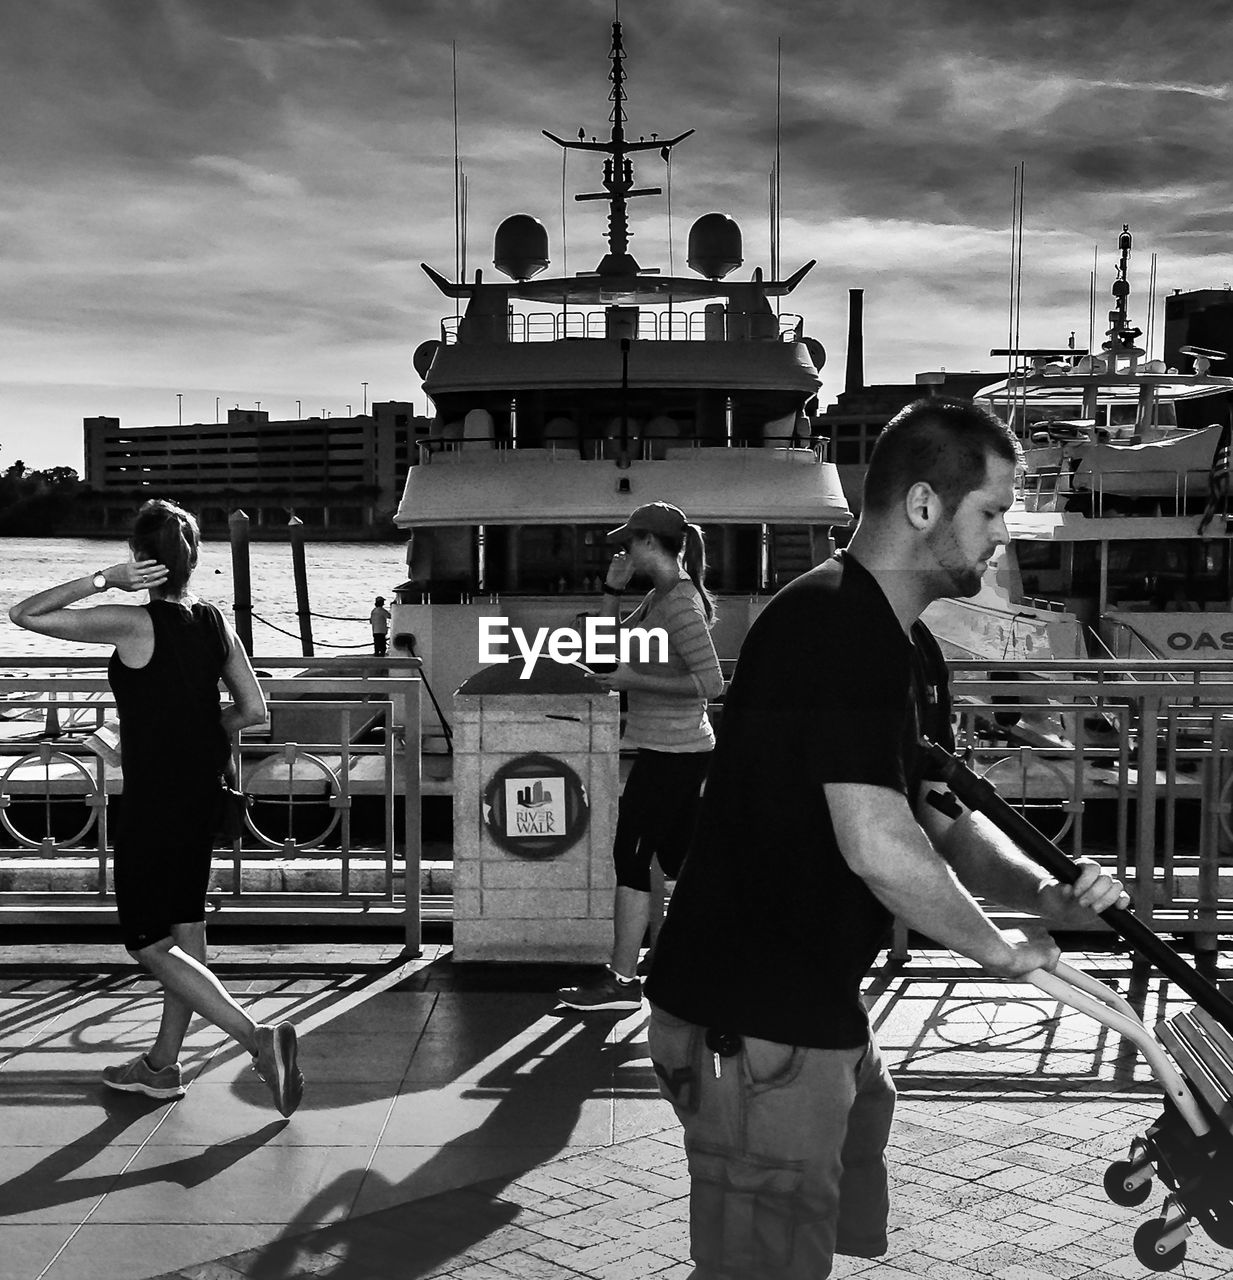 real people, nautical vessel, sky, harbor, transportation, built structure, cloud - sky, mode of transport, outdoors, standing, building exterior, architecture, day, young adult, moored, lifestyles, men, full length, one person, young women, people